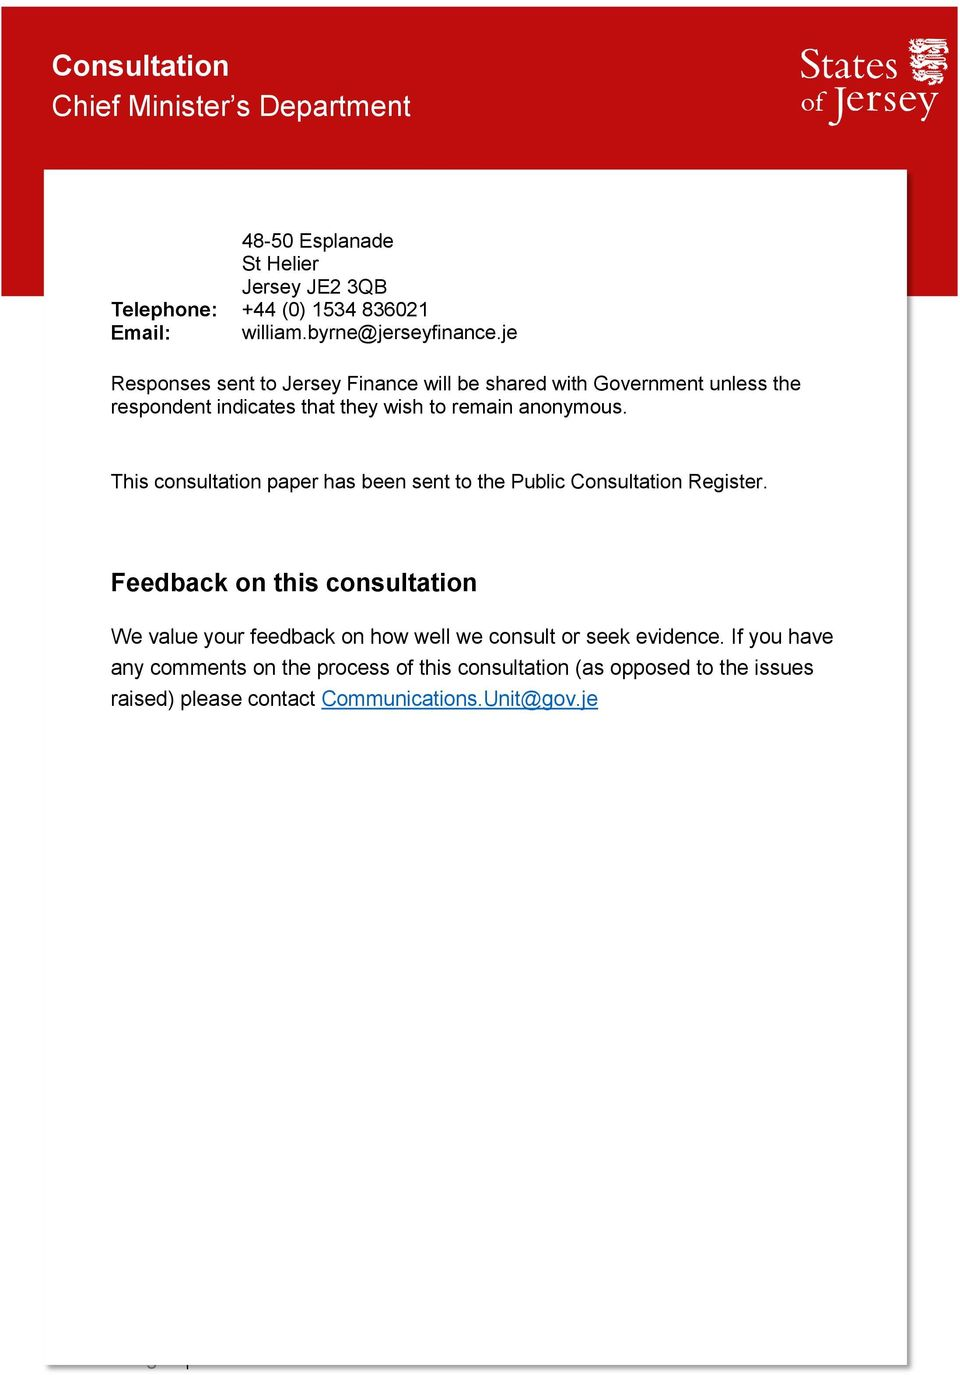 This consultation paper has been sent to the Public Consultation Register.